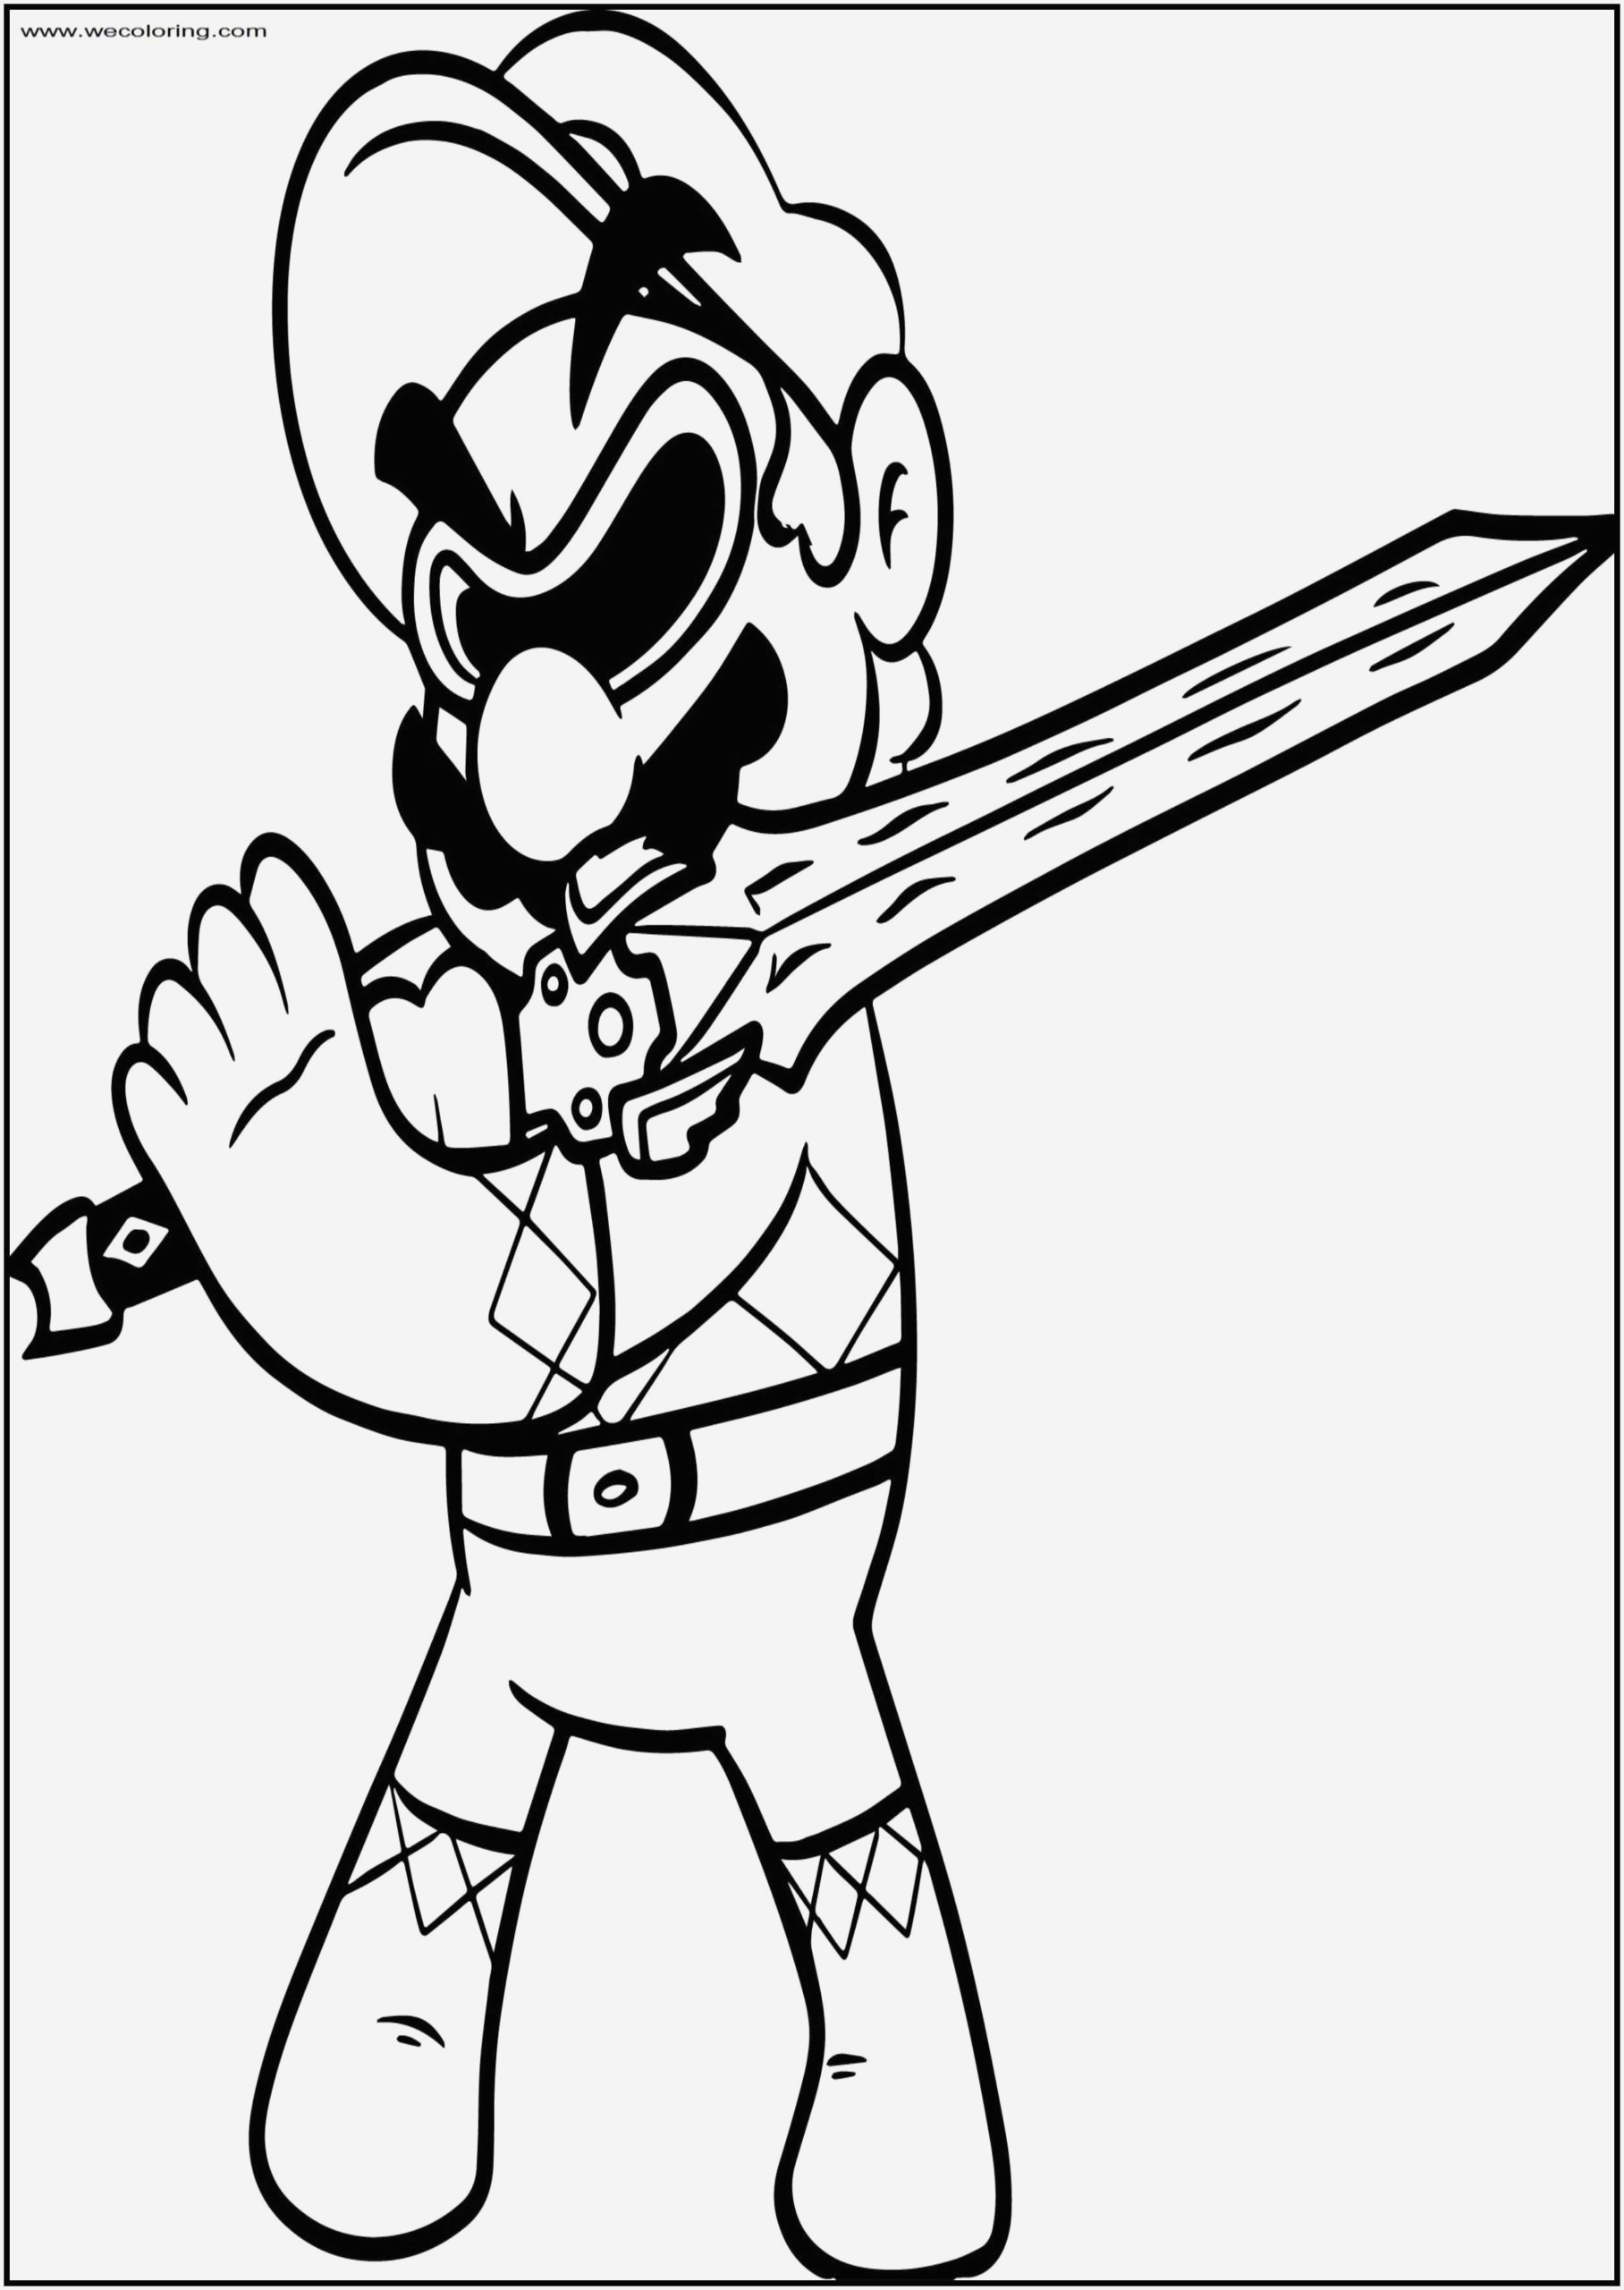 Coloriage Mario Kart Best Of Coloring Pages Coloring Daisy From Mario Kart Huangfei Of Coloriage Mario Kart